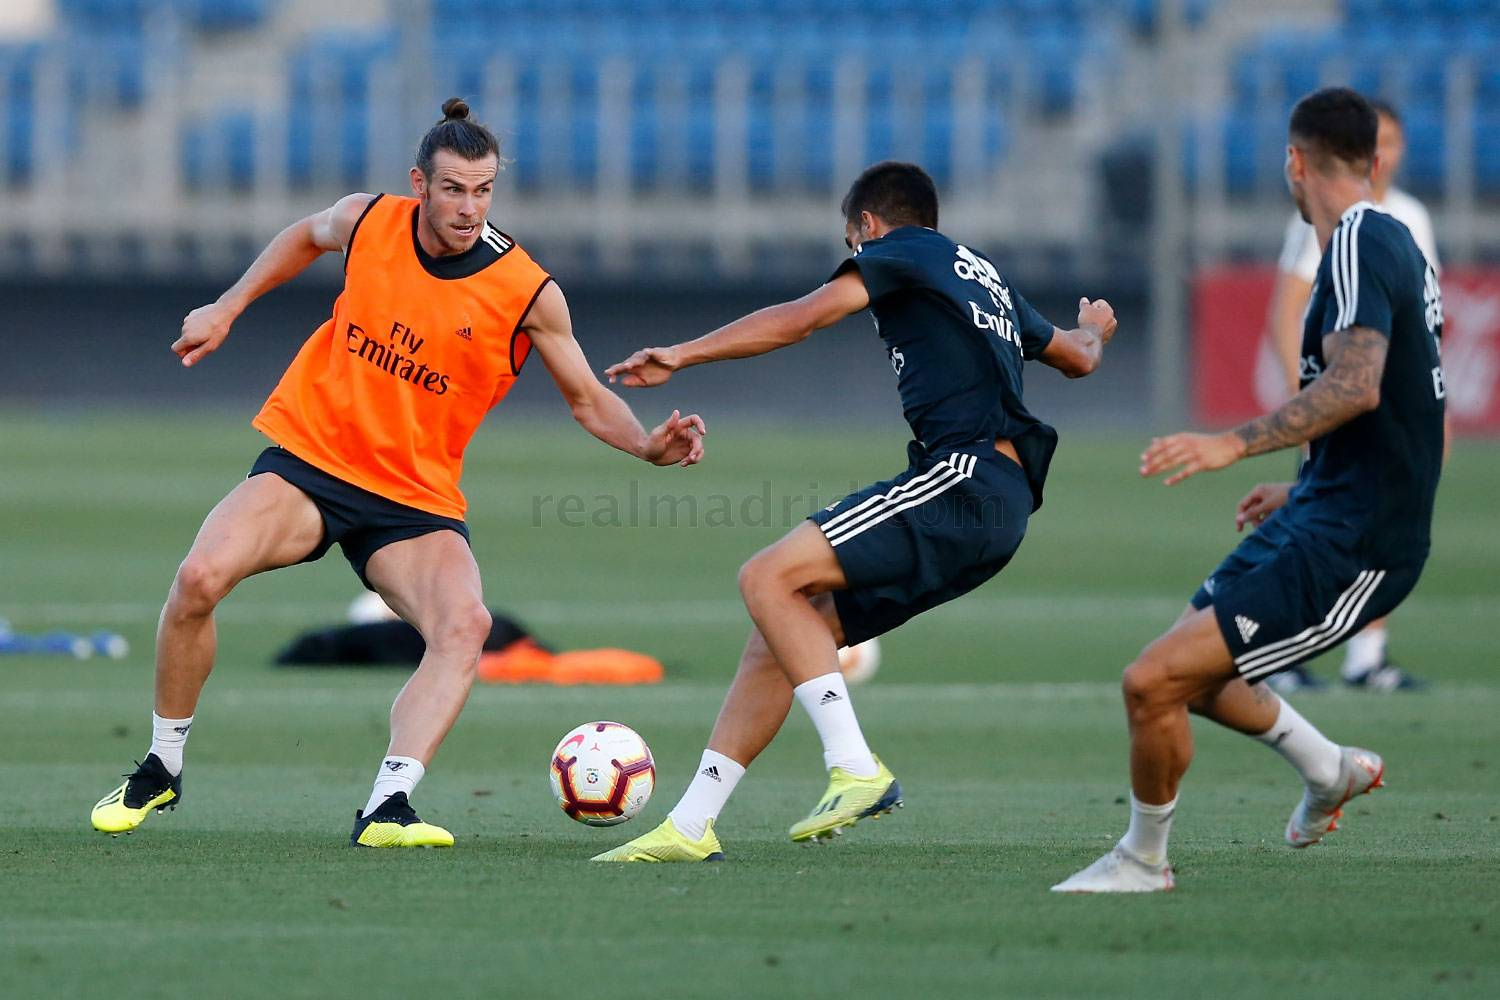 Real Madrid - Entrenamiento del Real Madrid - 29-08-2018